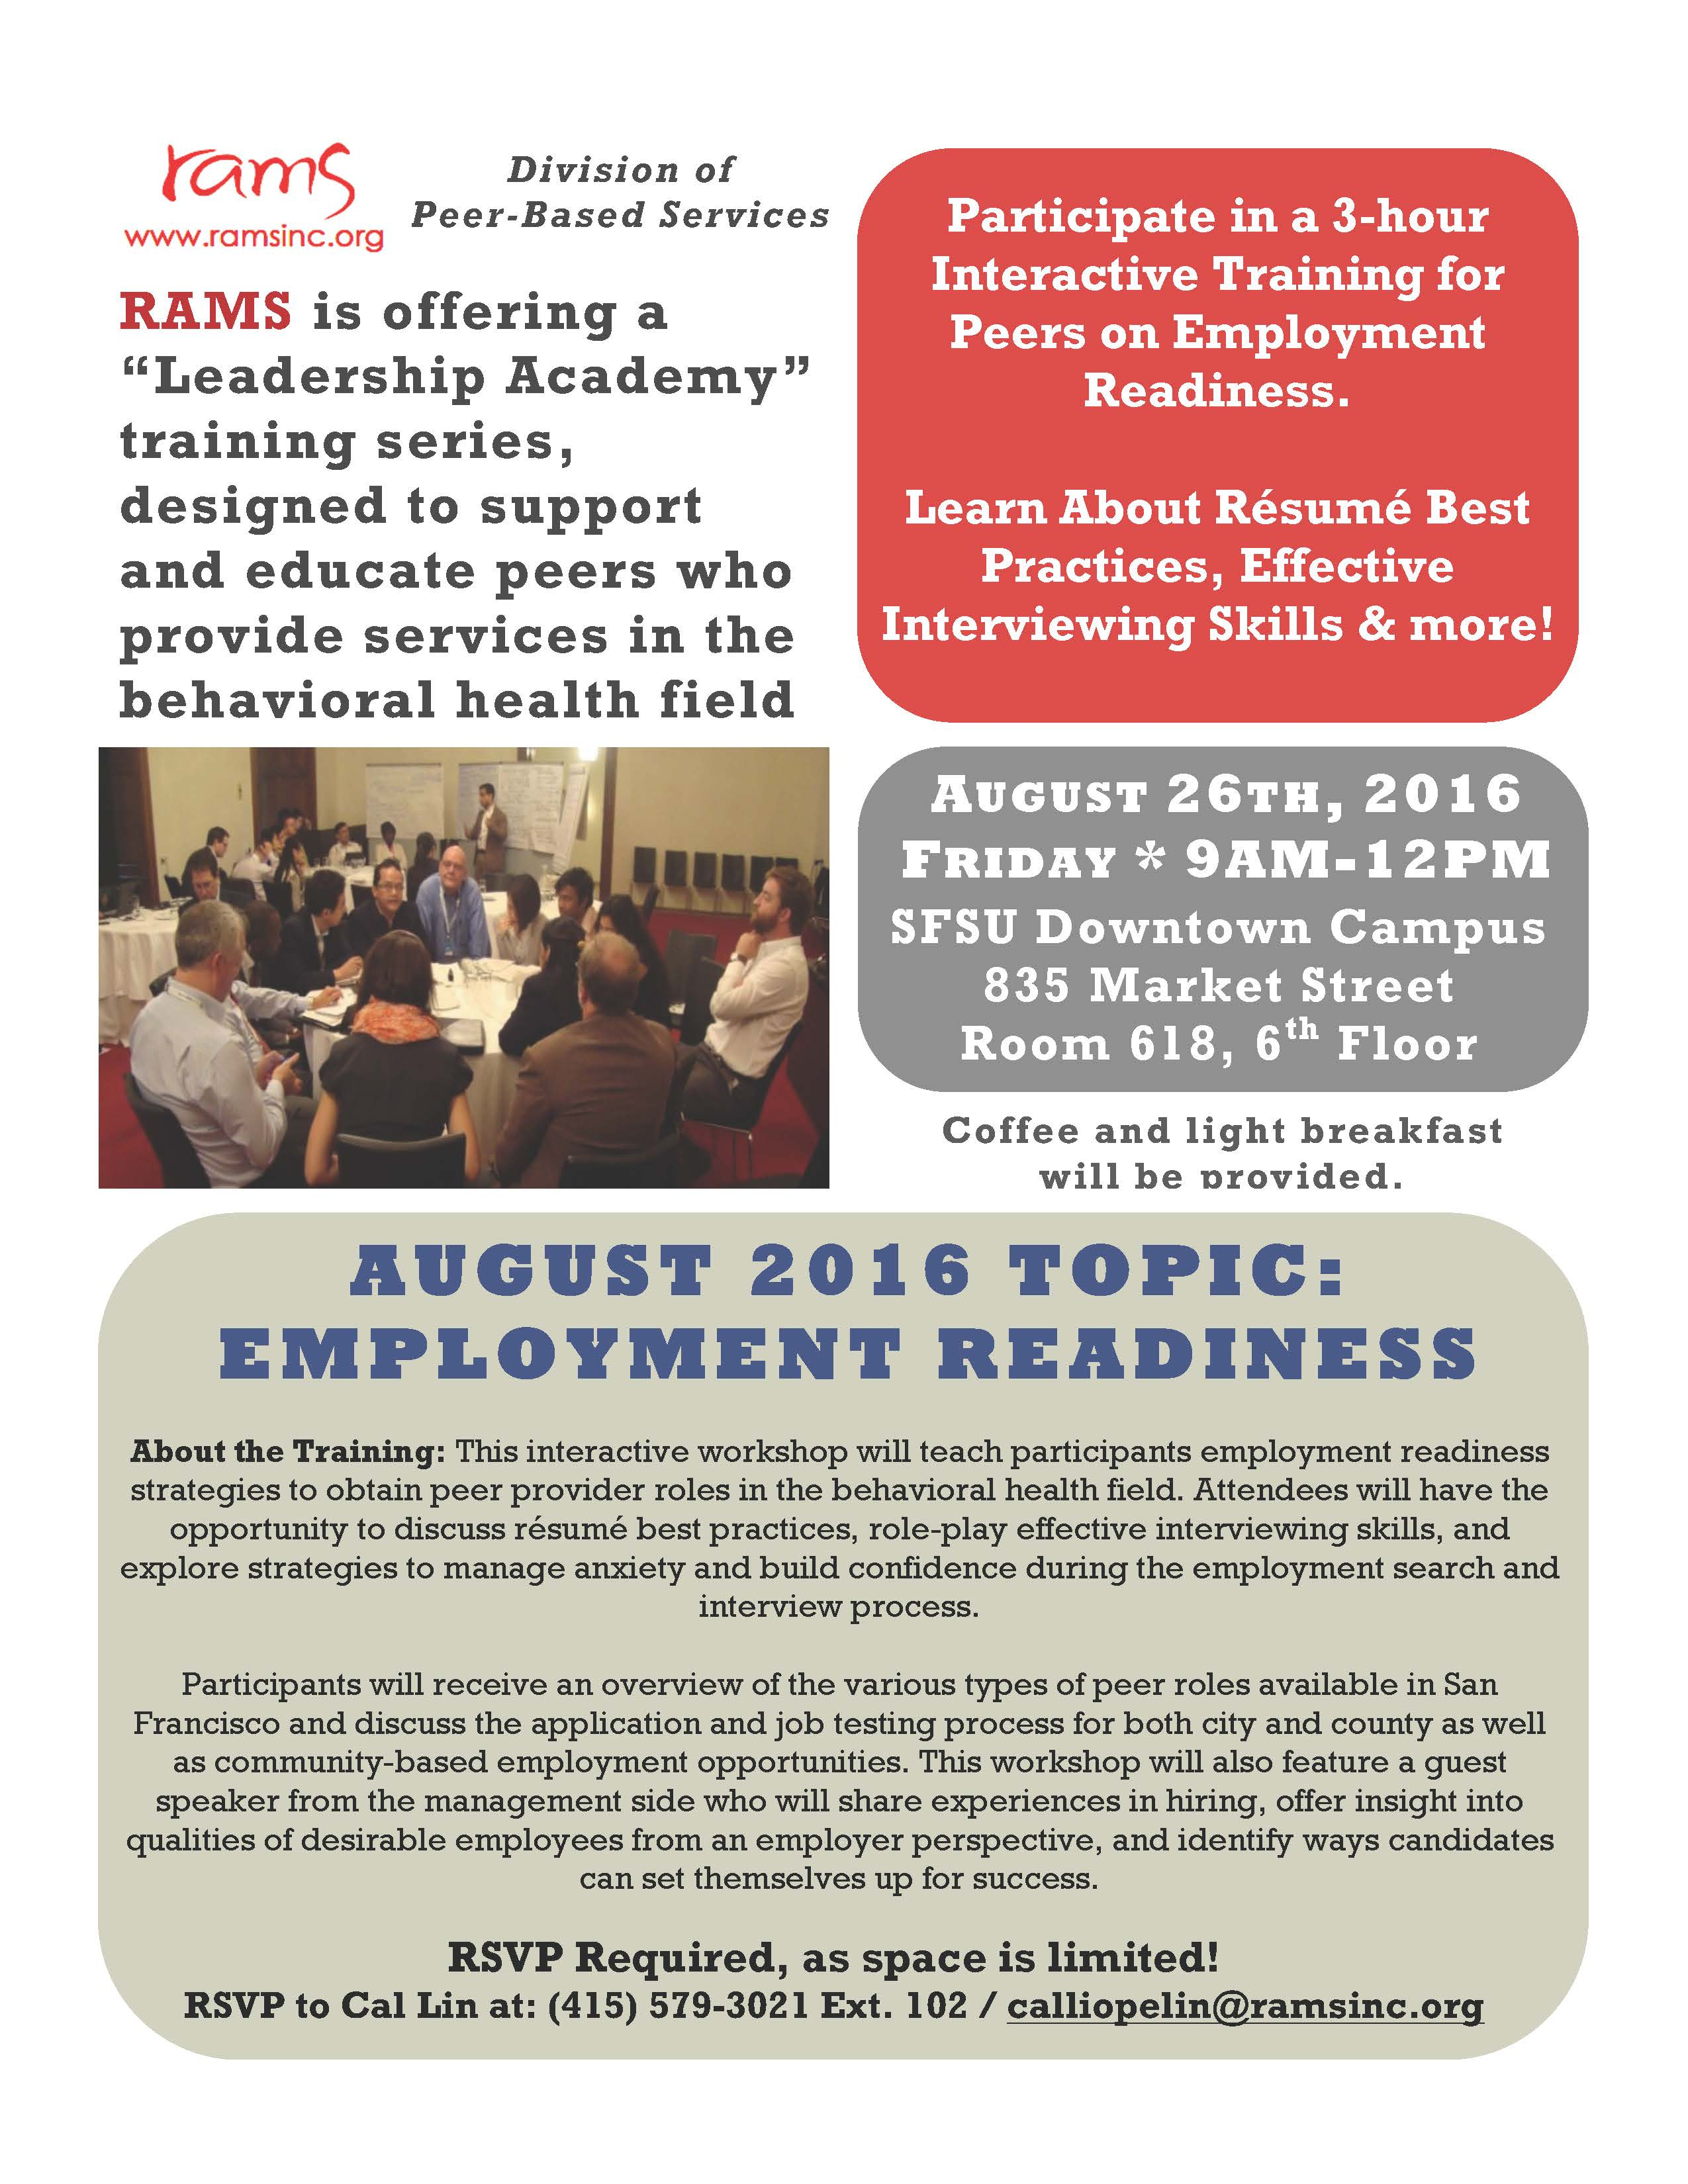 RAMS August 2016 Leadership Academy: Employment Readiness ...